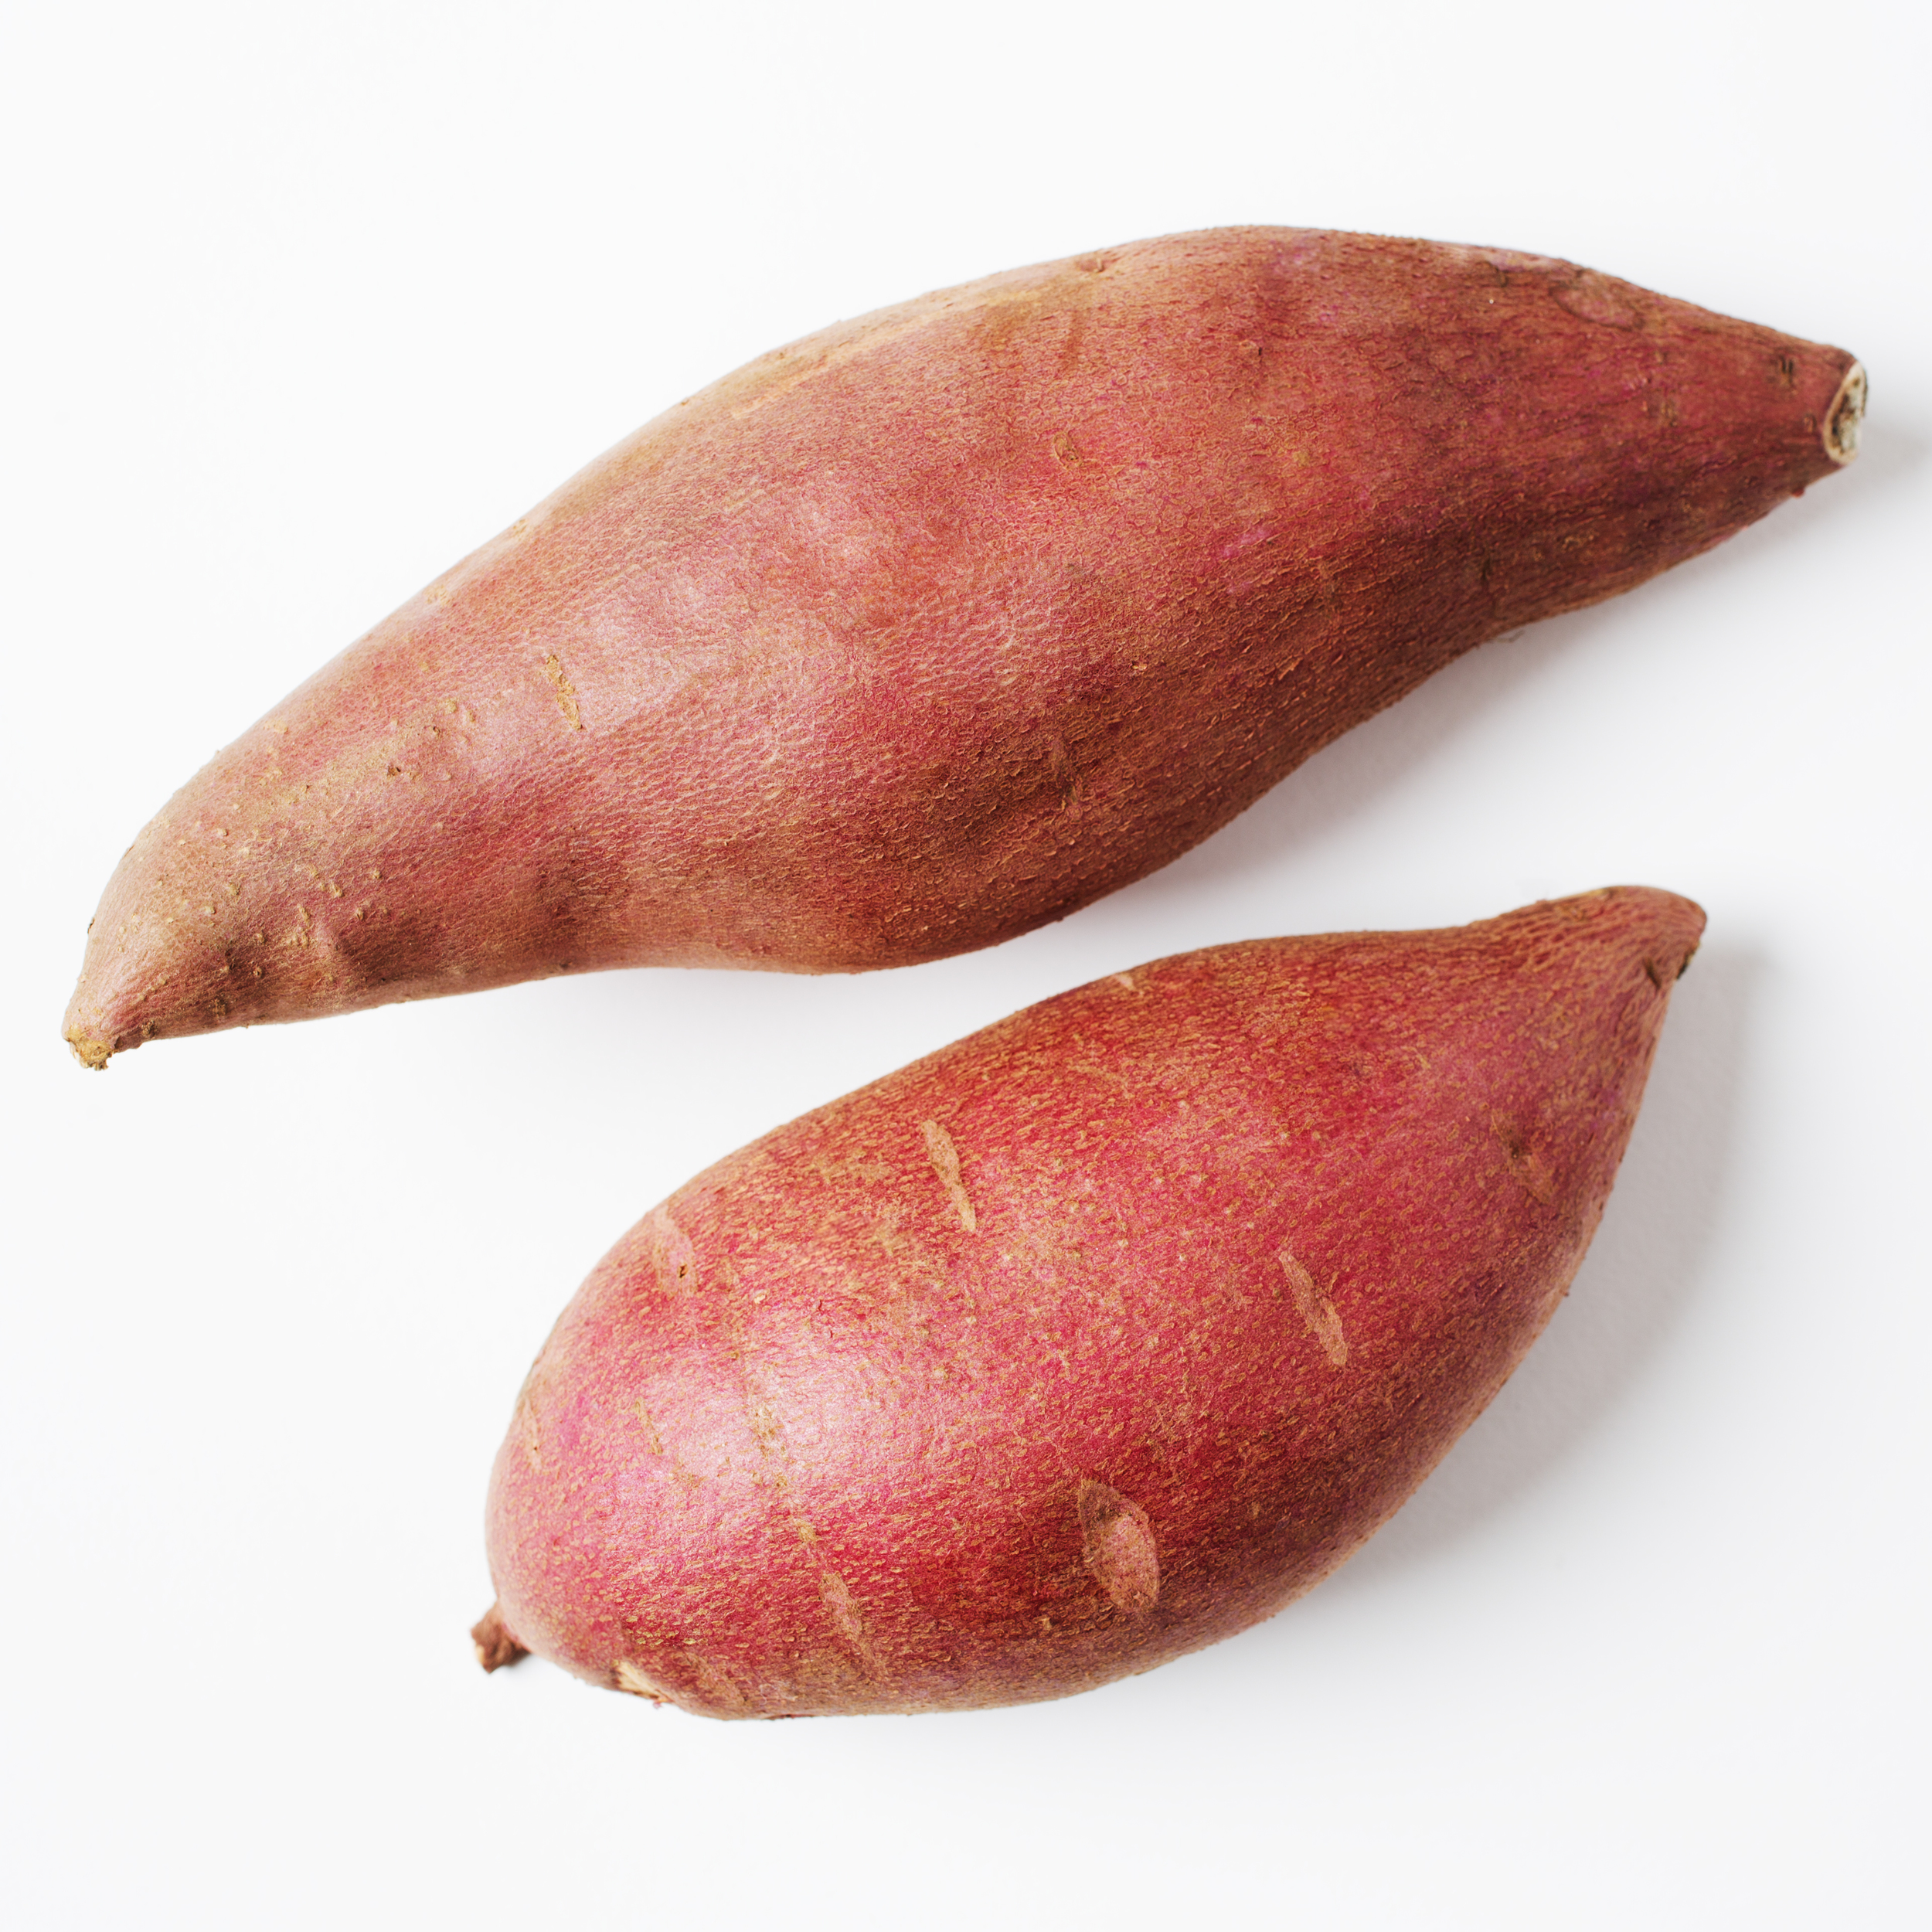 5-potatoes_X3A8074-f-sq.jpg